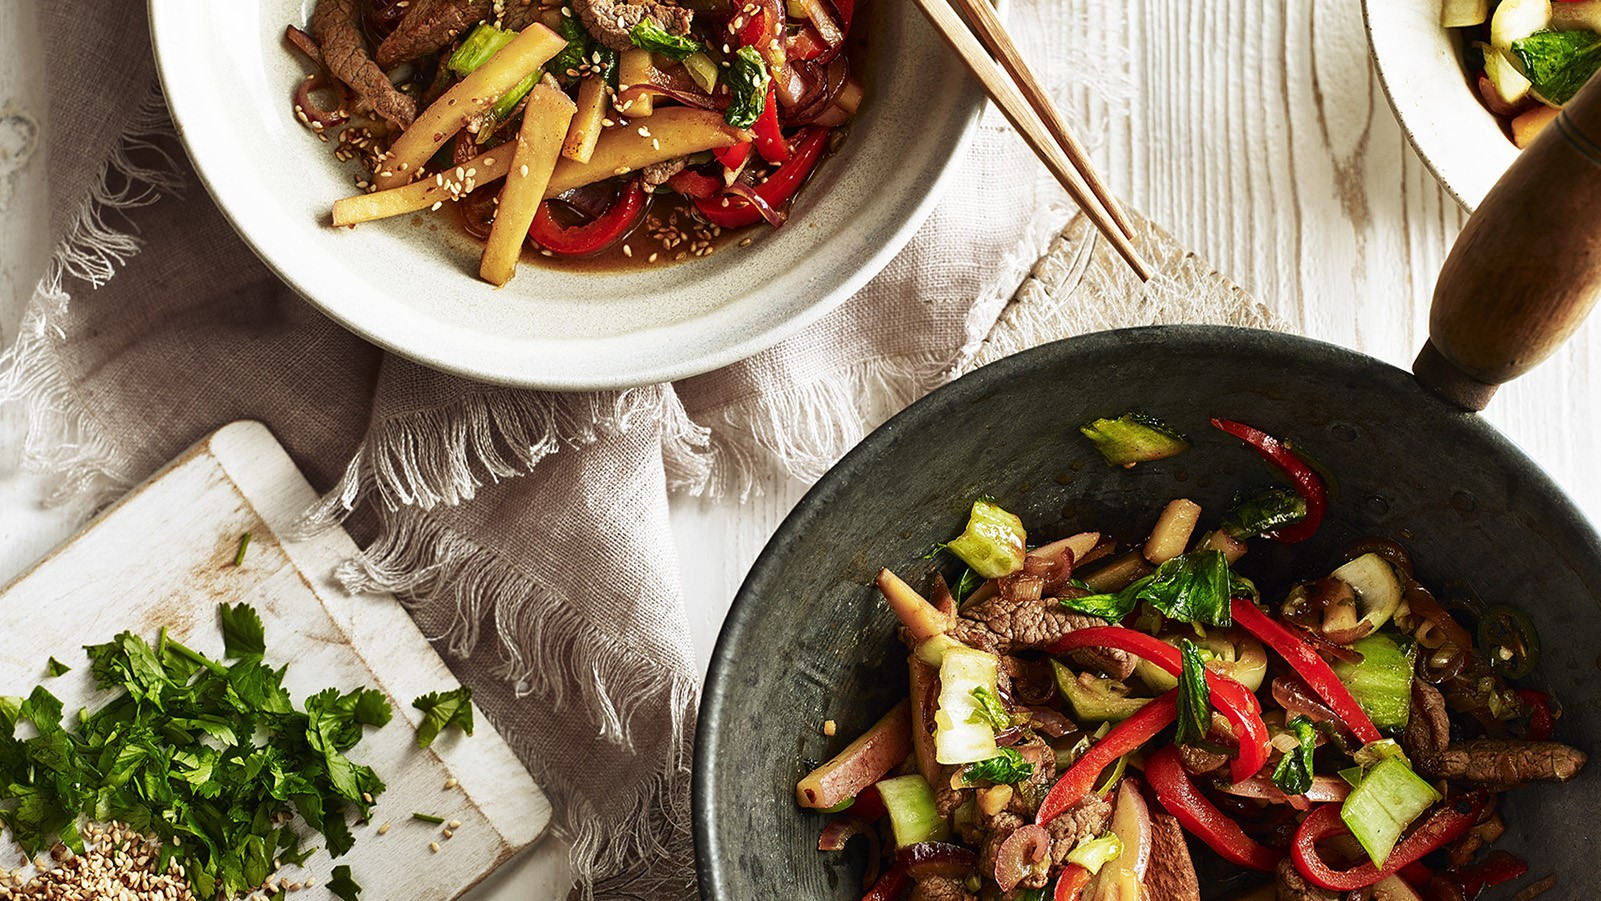 Hot Wok Potato and Beef Stir-fry